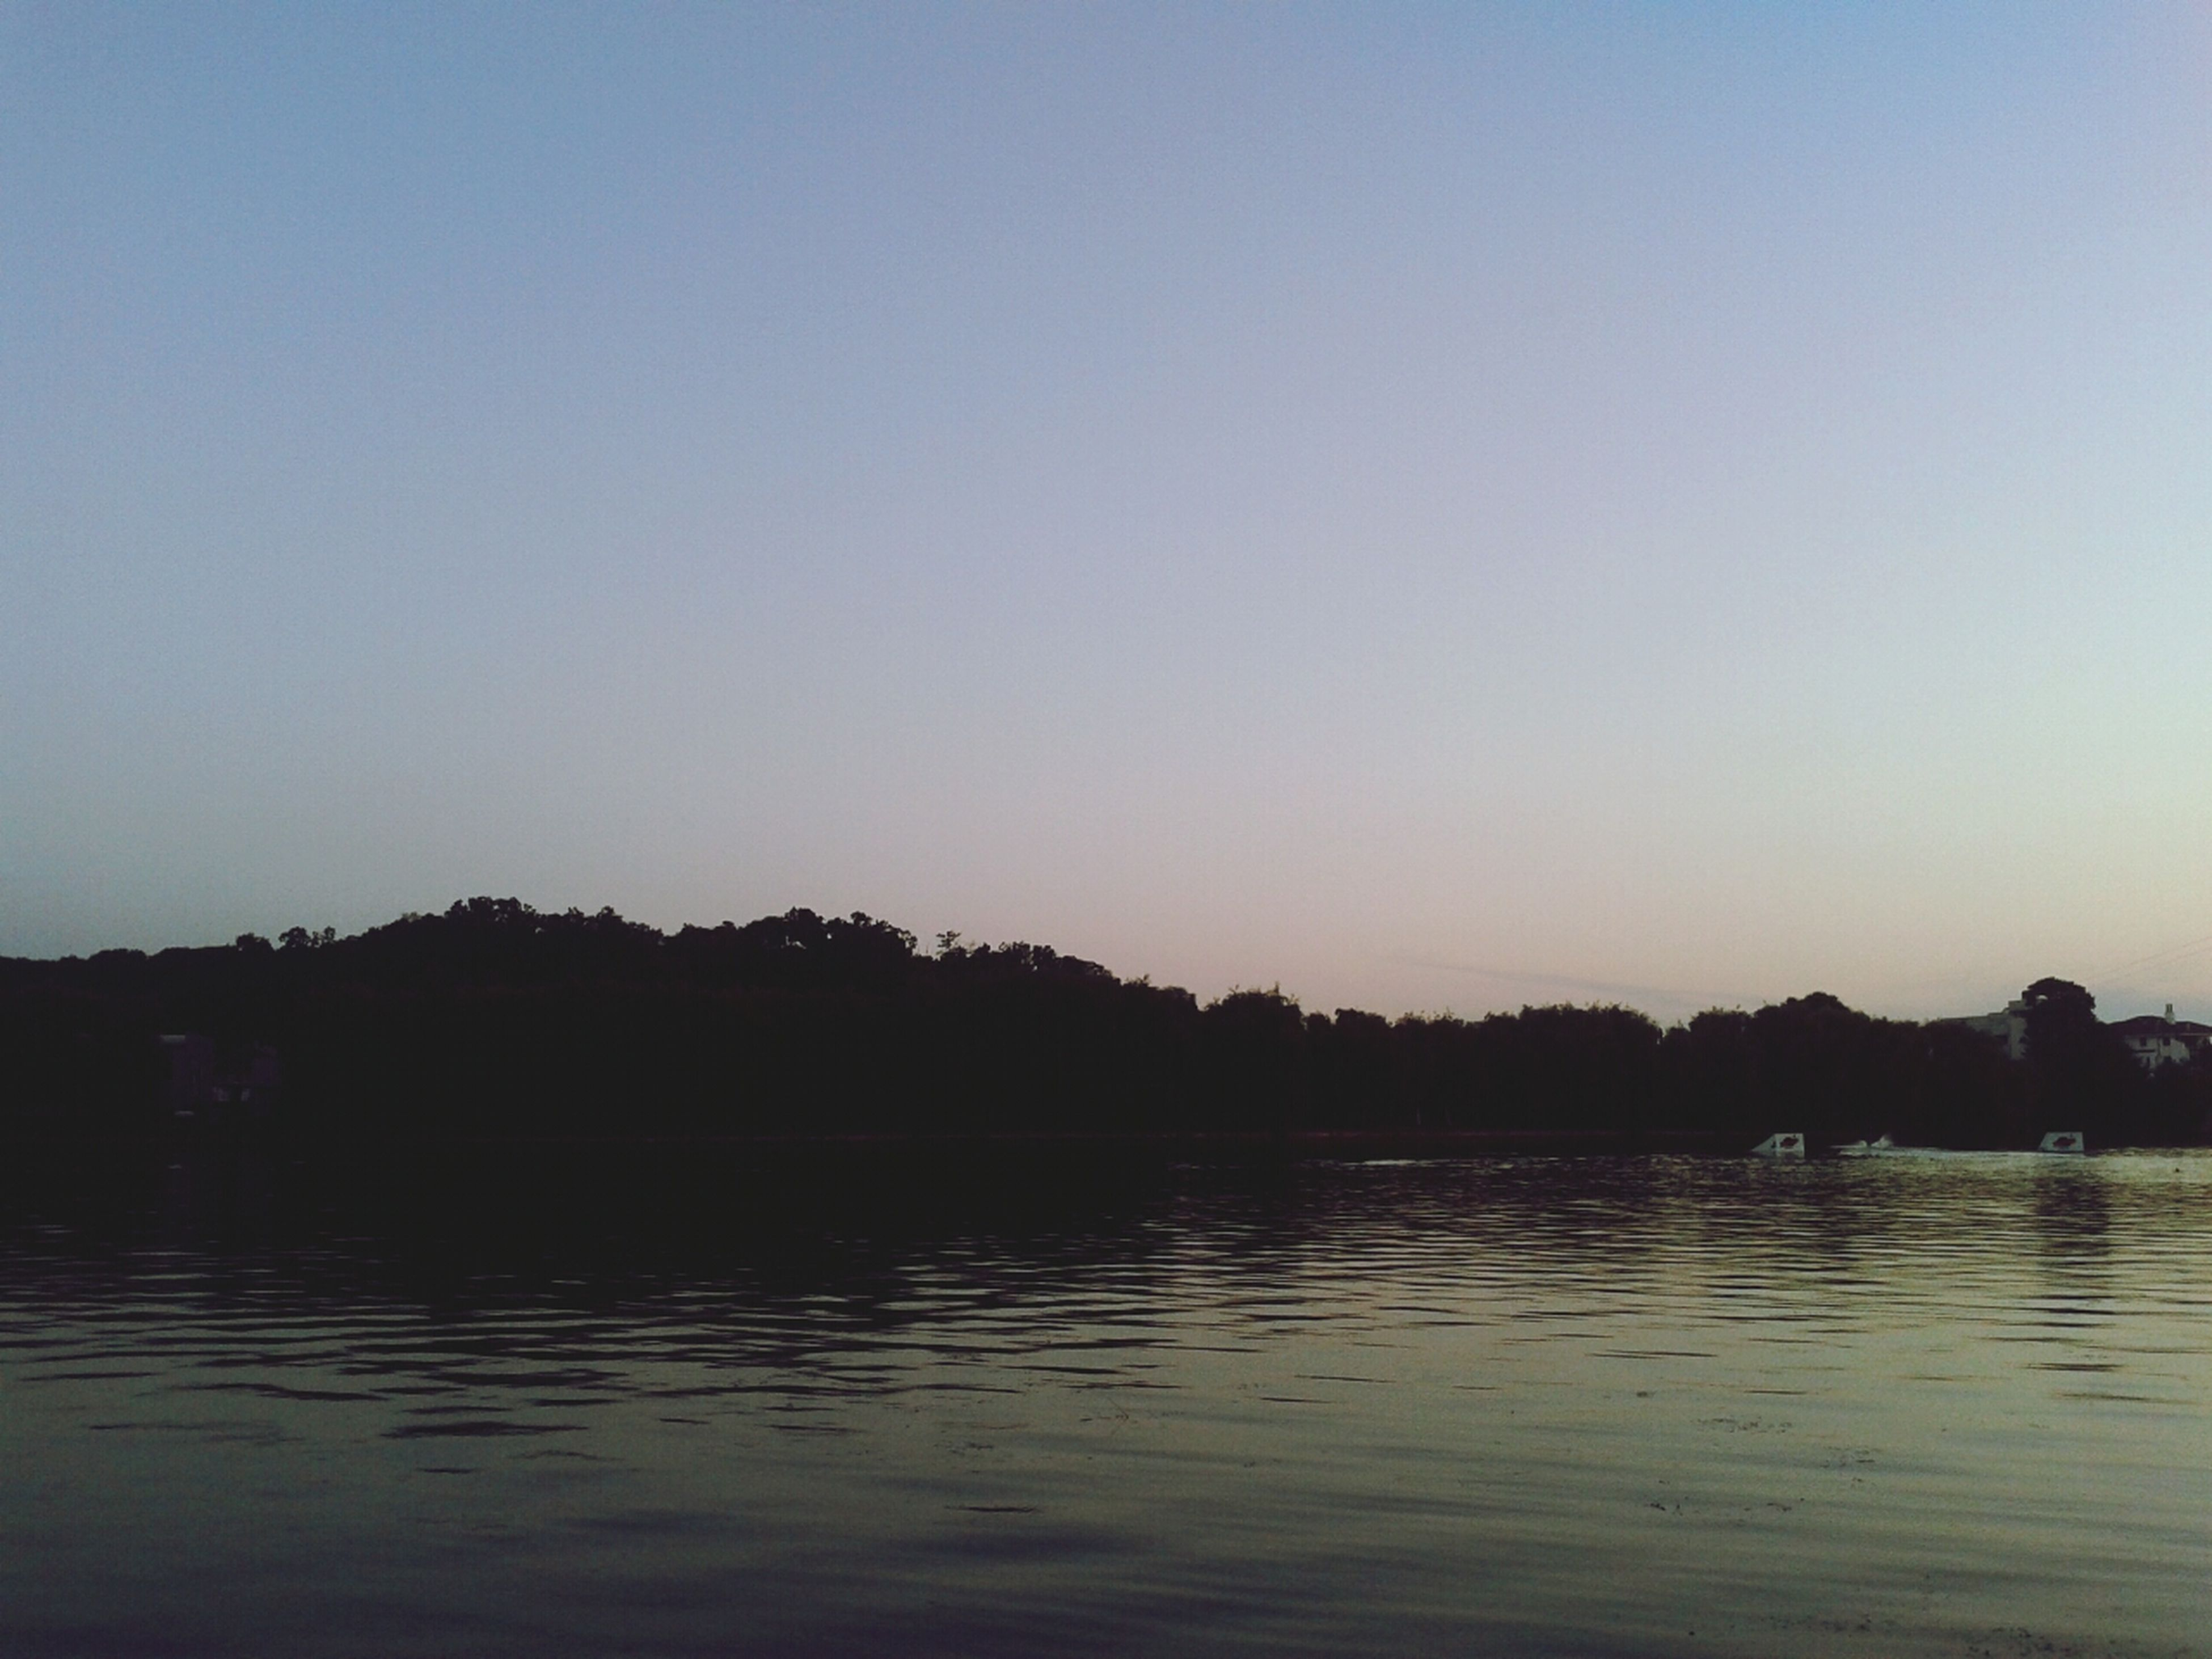 water, clear sky, copy space, waterfront, silhouette, tranquil scene, tranquility, scenics, sunset, lake, reflection, beauty in nature, nature, tree, idyllic, river, dusk, calm, outdoors, sky